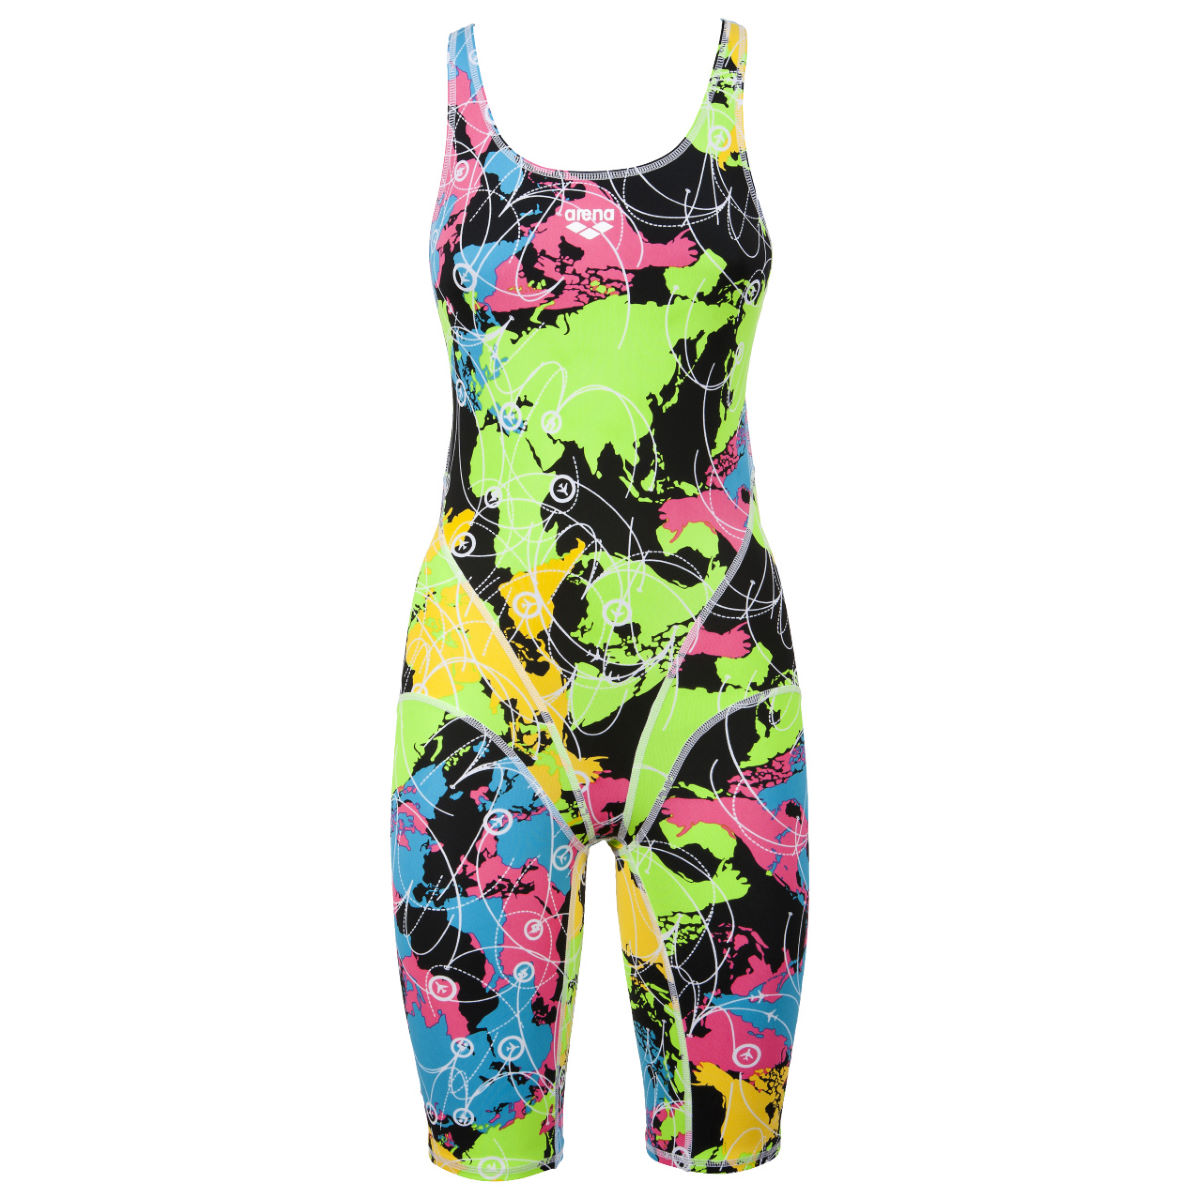 arena women Top on-line store for ladies arena swimwear including women's competition level  swimwear as well as swimsuits, bikinis, tankinins, waterfeel, waternity and.